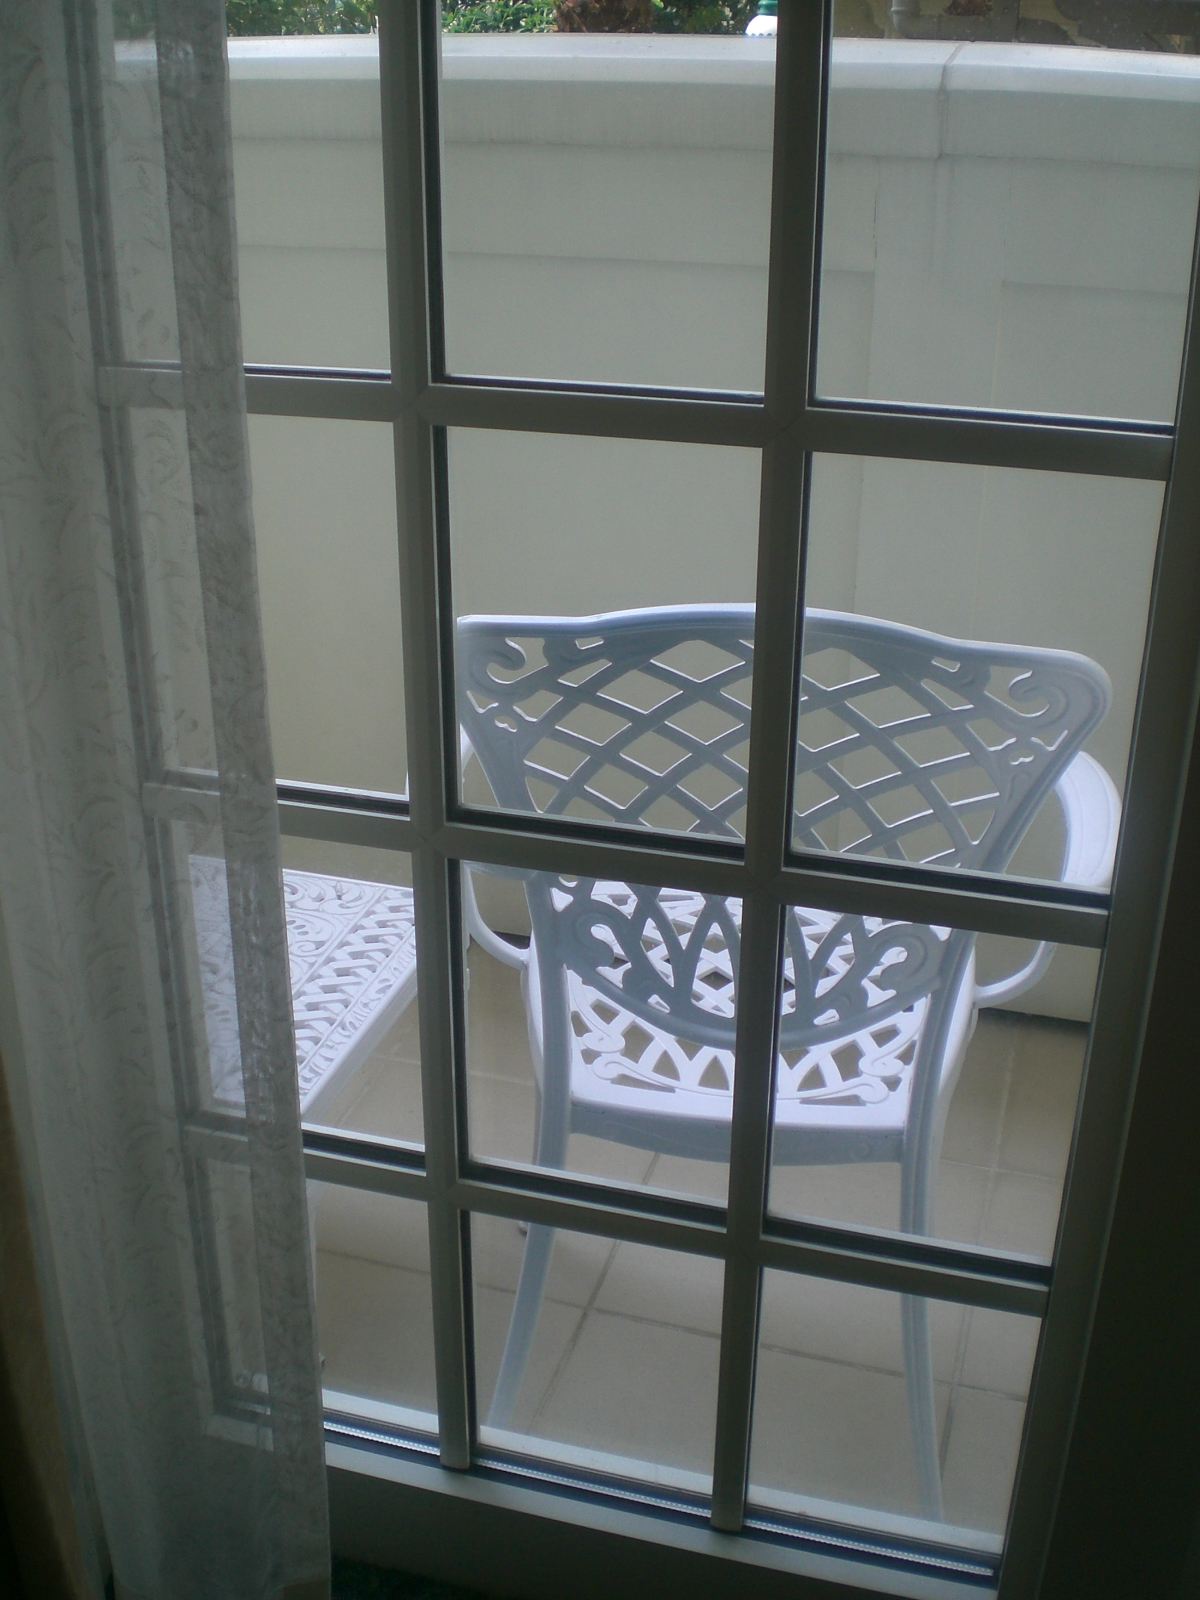 File Hk Disneyland Hotel Room ə�台 Balcony Glass Door Ƥ�子 Armchair In White Jpg Wikimedia Commons